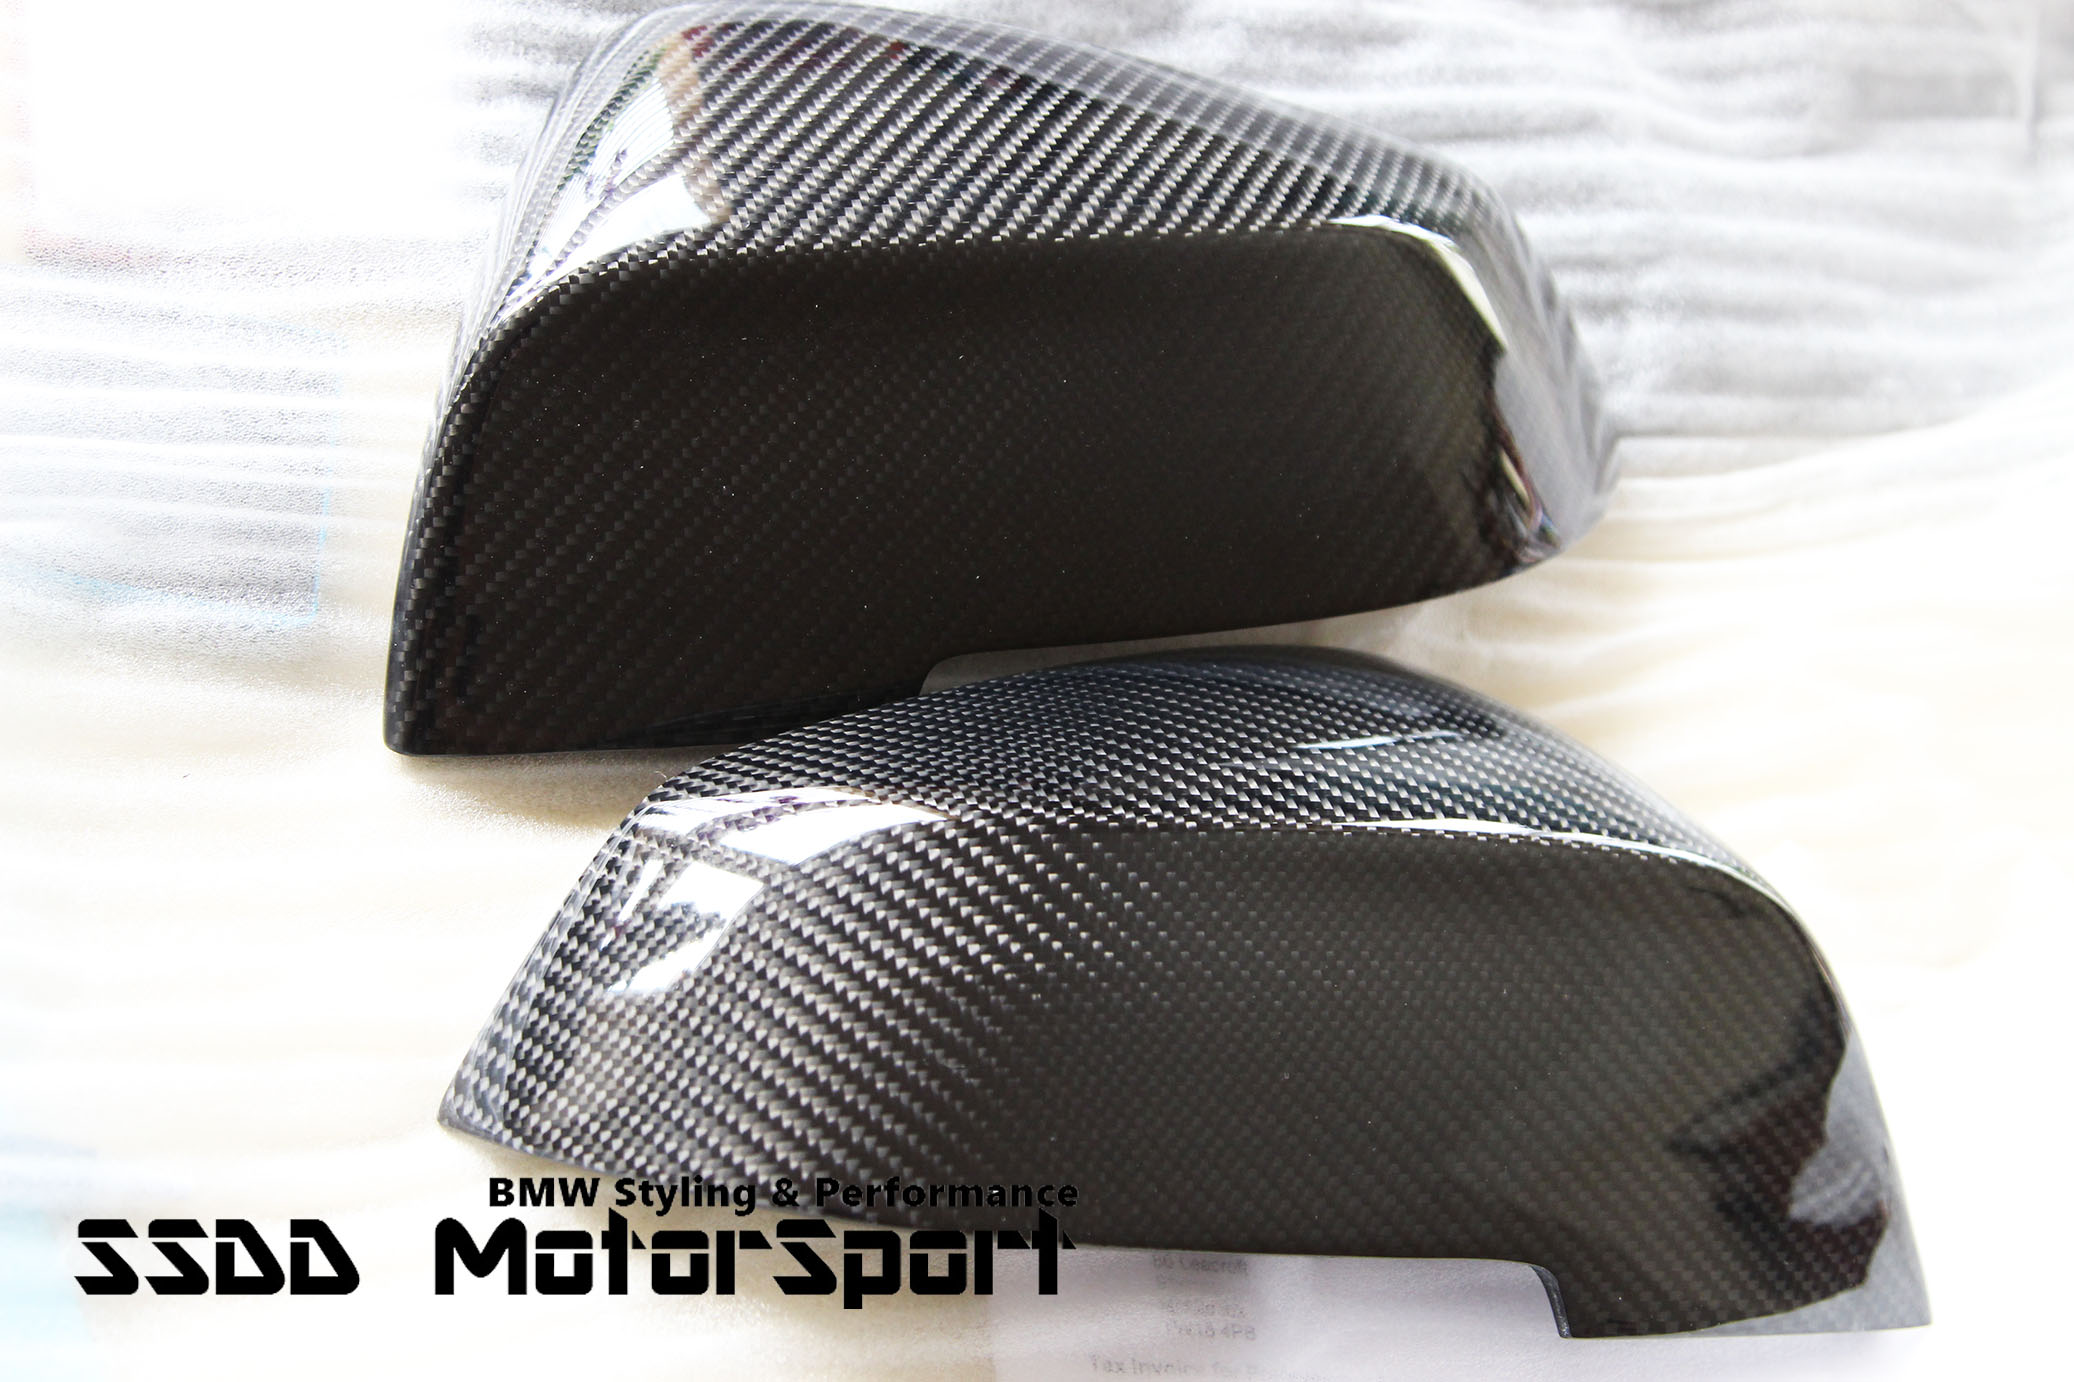 bmw-mperformance-style-carbon-fibre-mirror-covers-f20-f30-f32-5.jpg